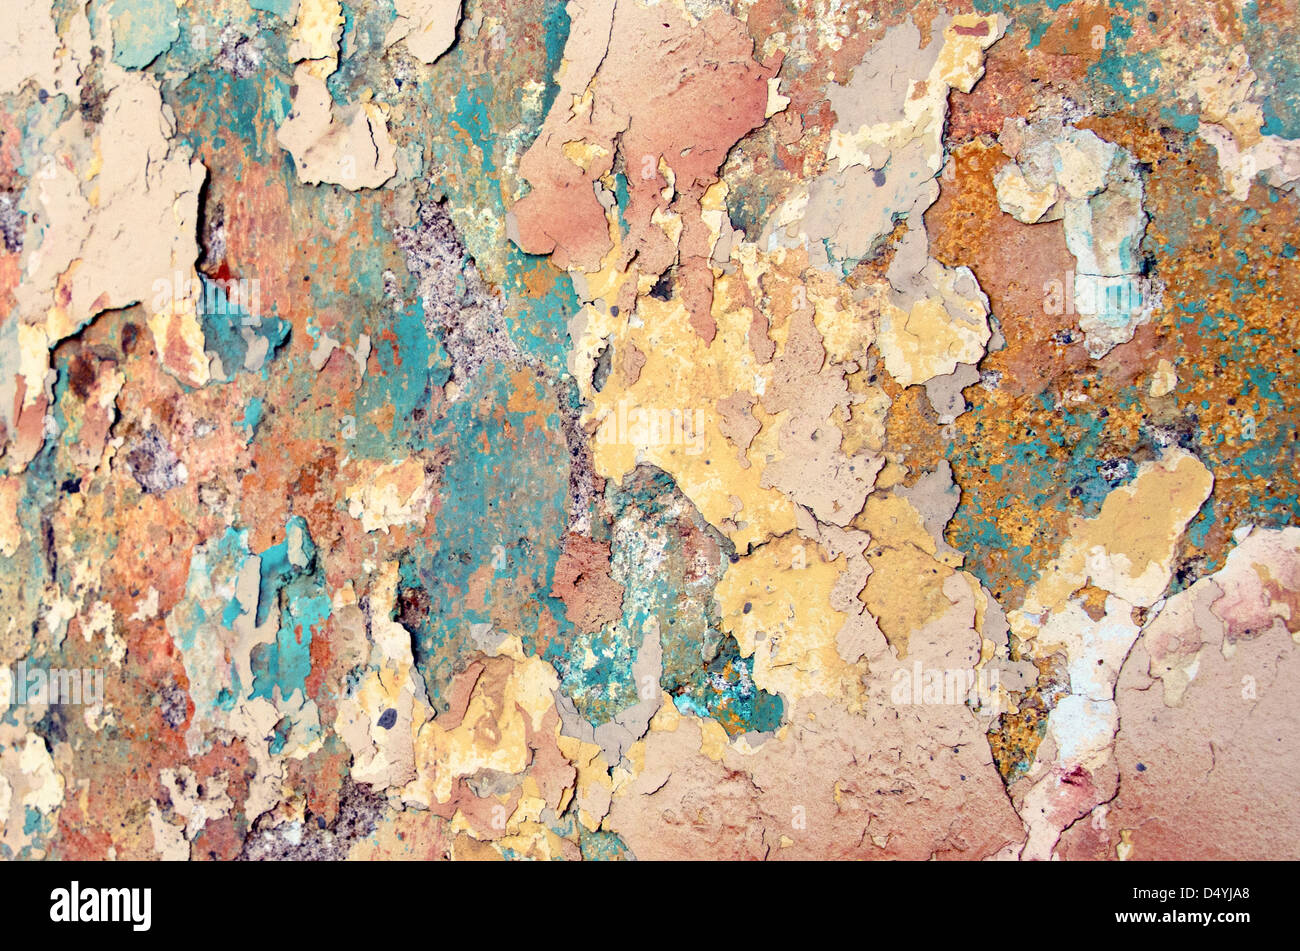 Layers Of Plaster Stock Photos & Layers Of Plaster Stock Images - Alamy